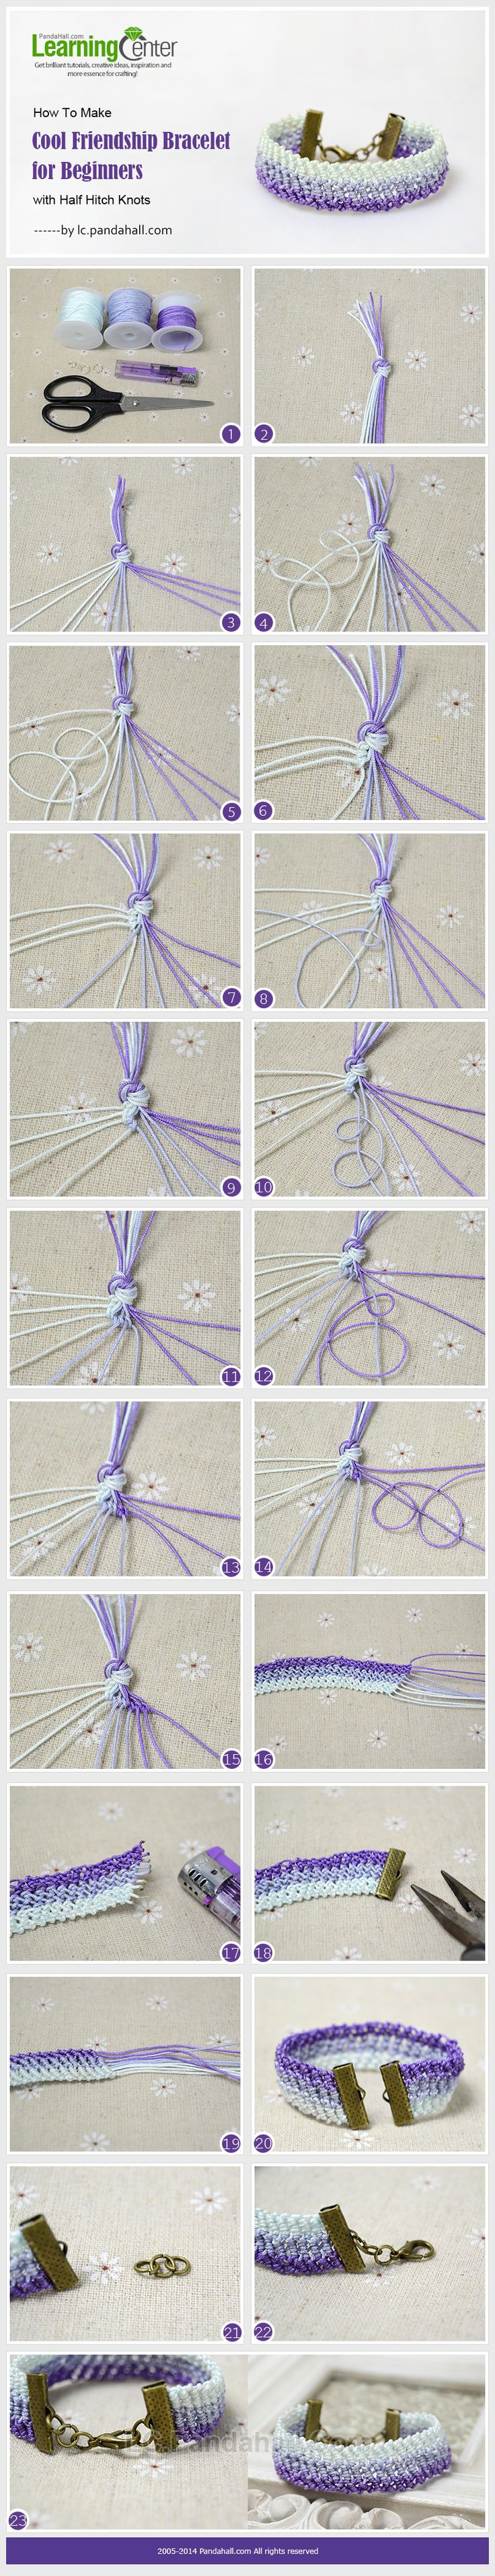 DIY Friendship Bracelet for Beginners w/ Half Hitch Knots